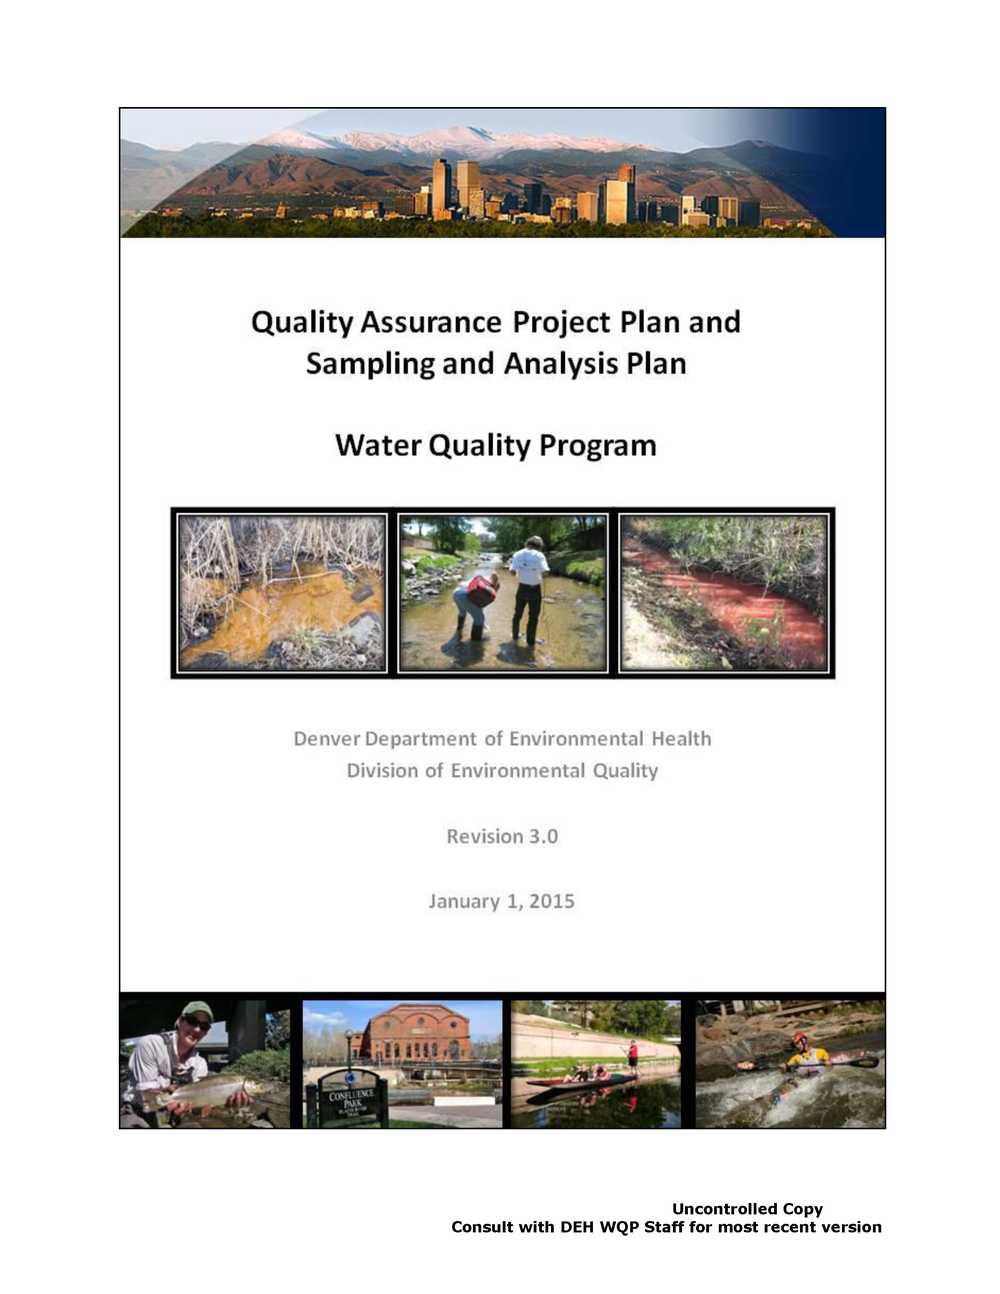 Quality Assurance Project Plan Water Quality 1.png